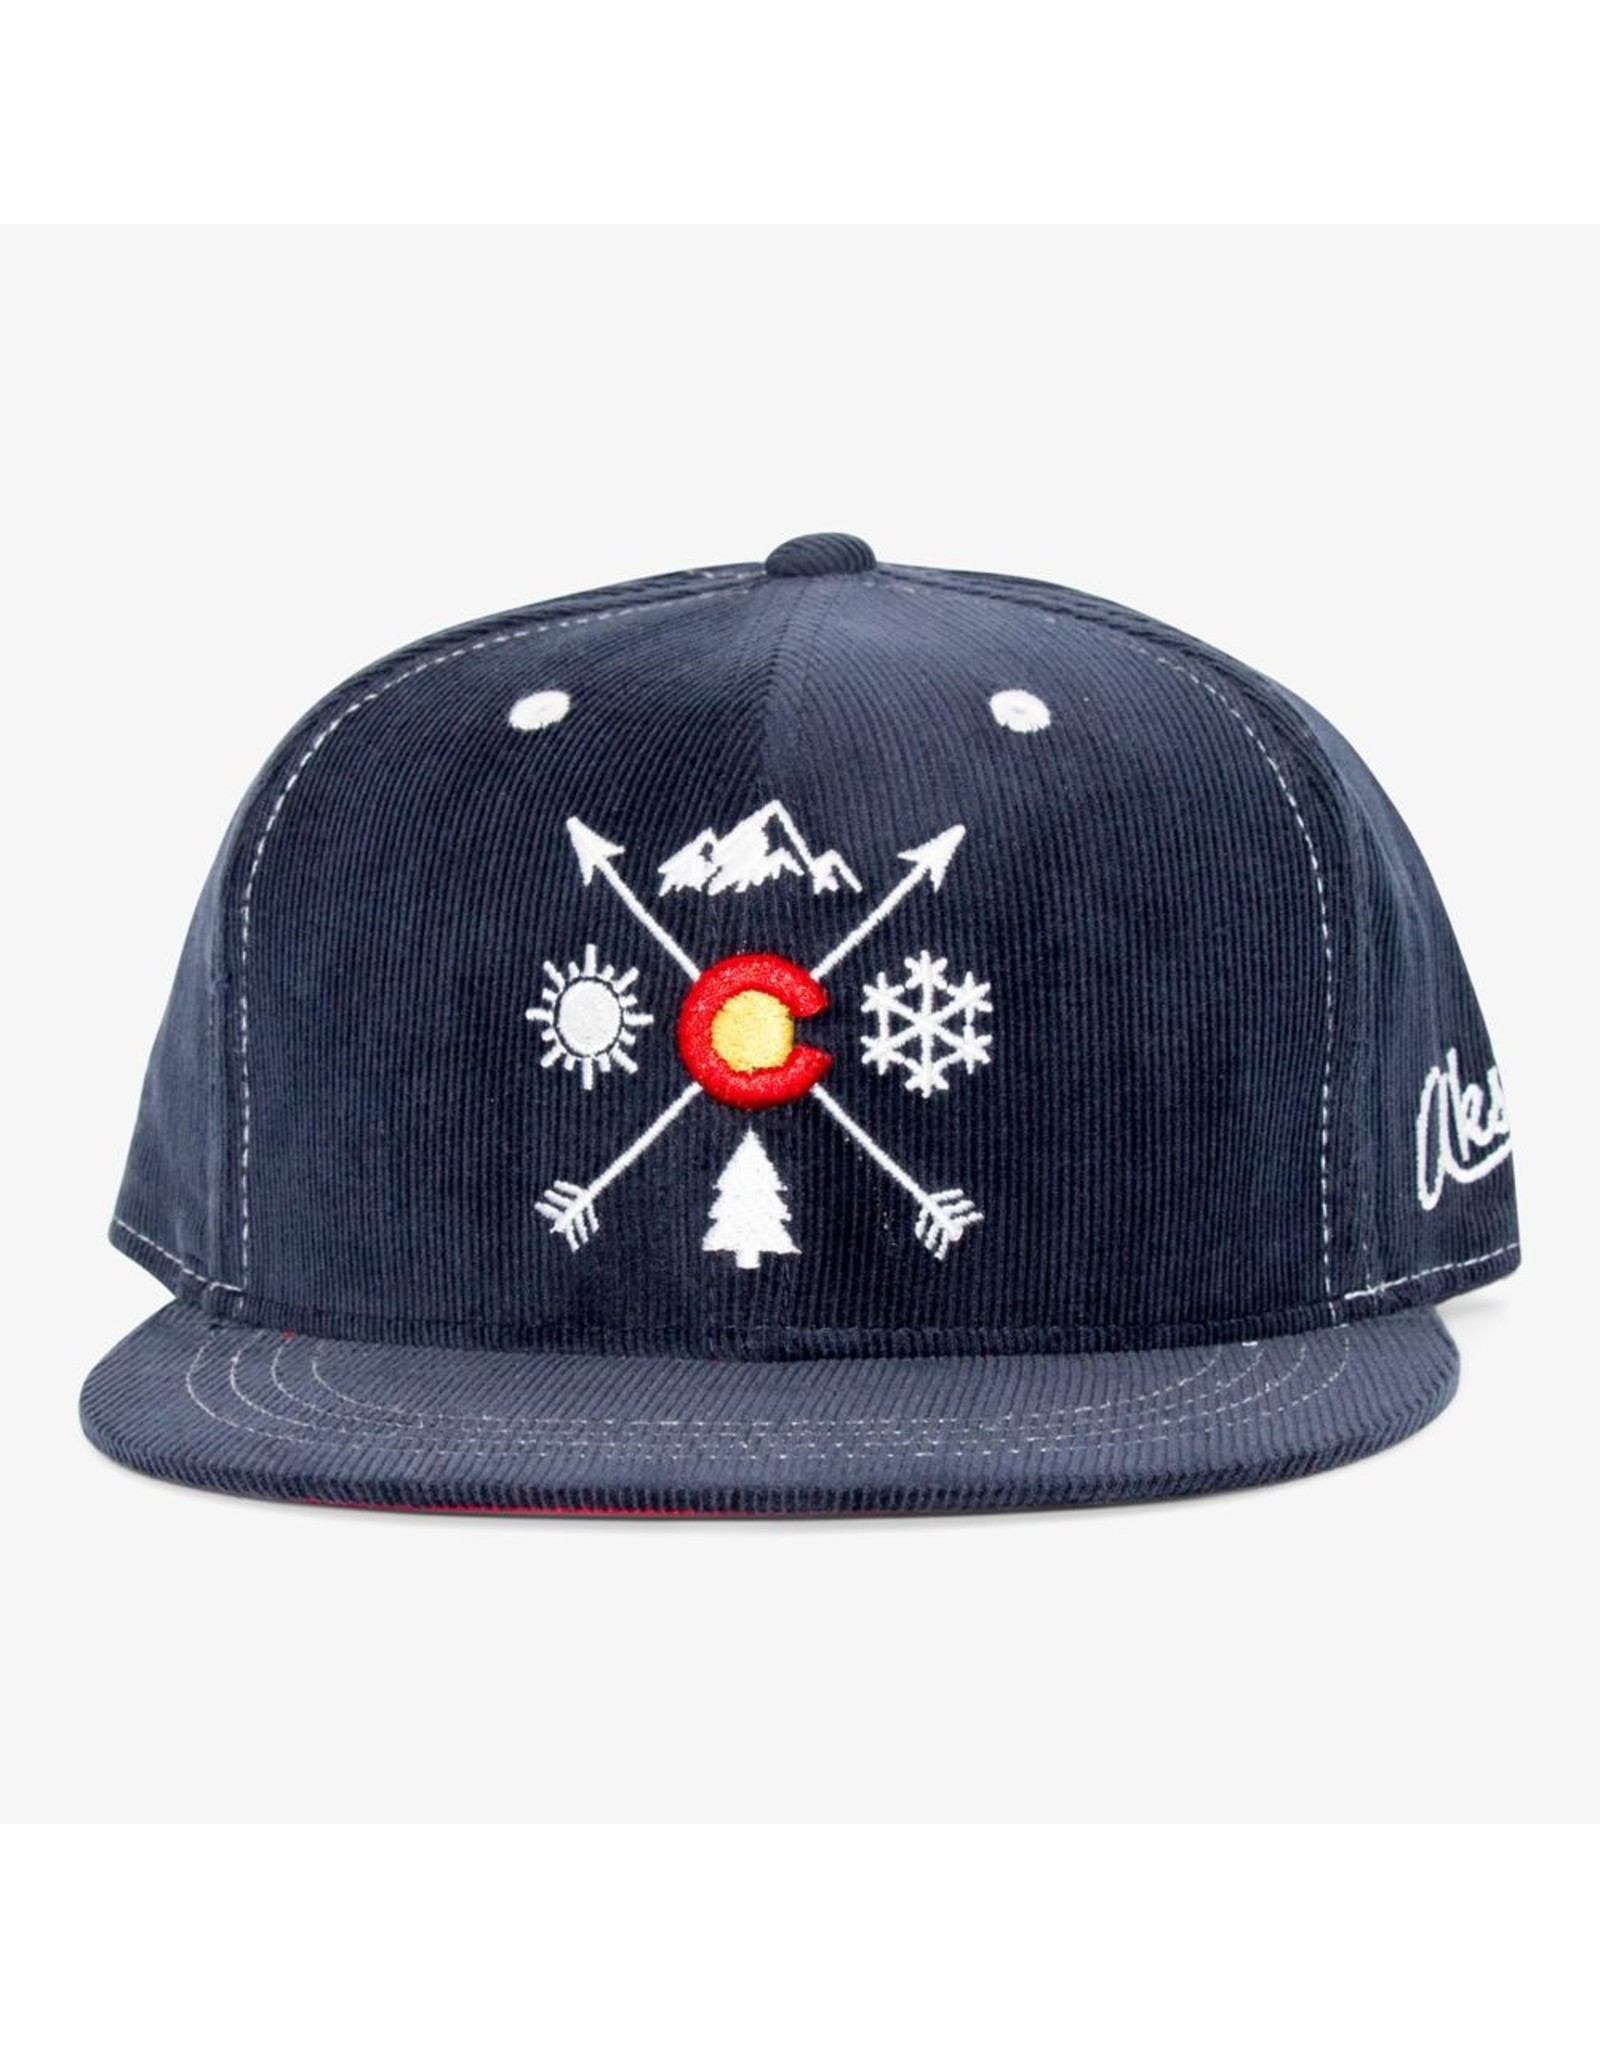 Aksels Aksels Colorado Arrows Corduroy Snapback Hat, Navy